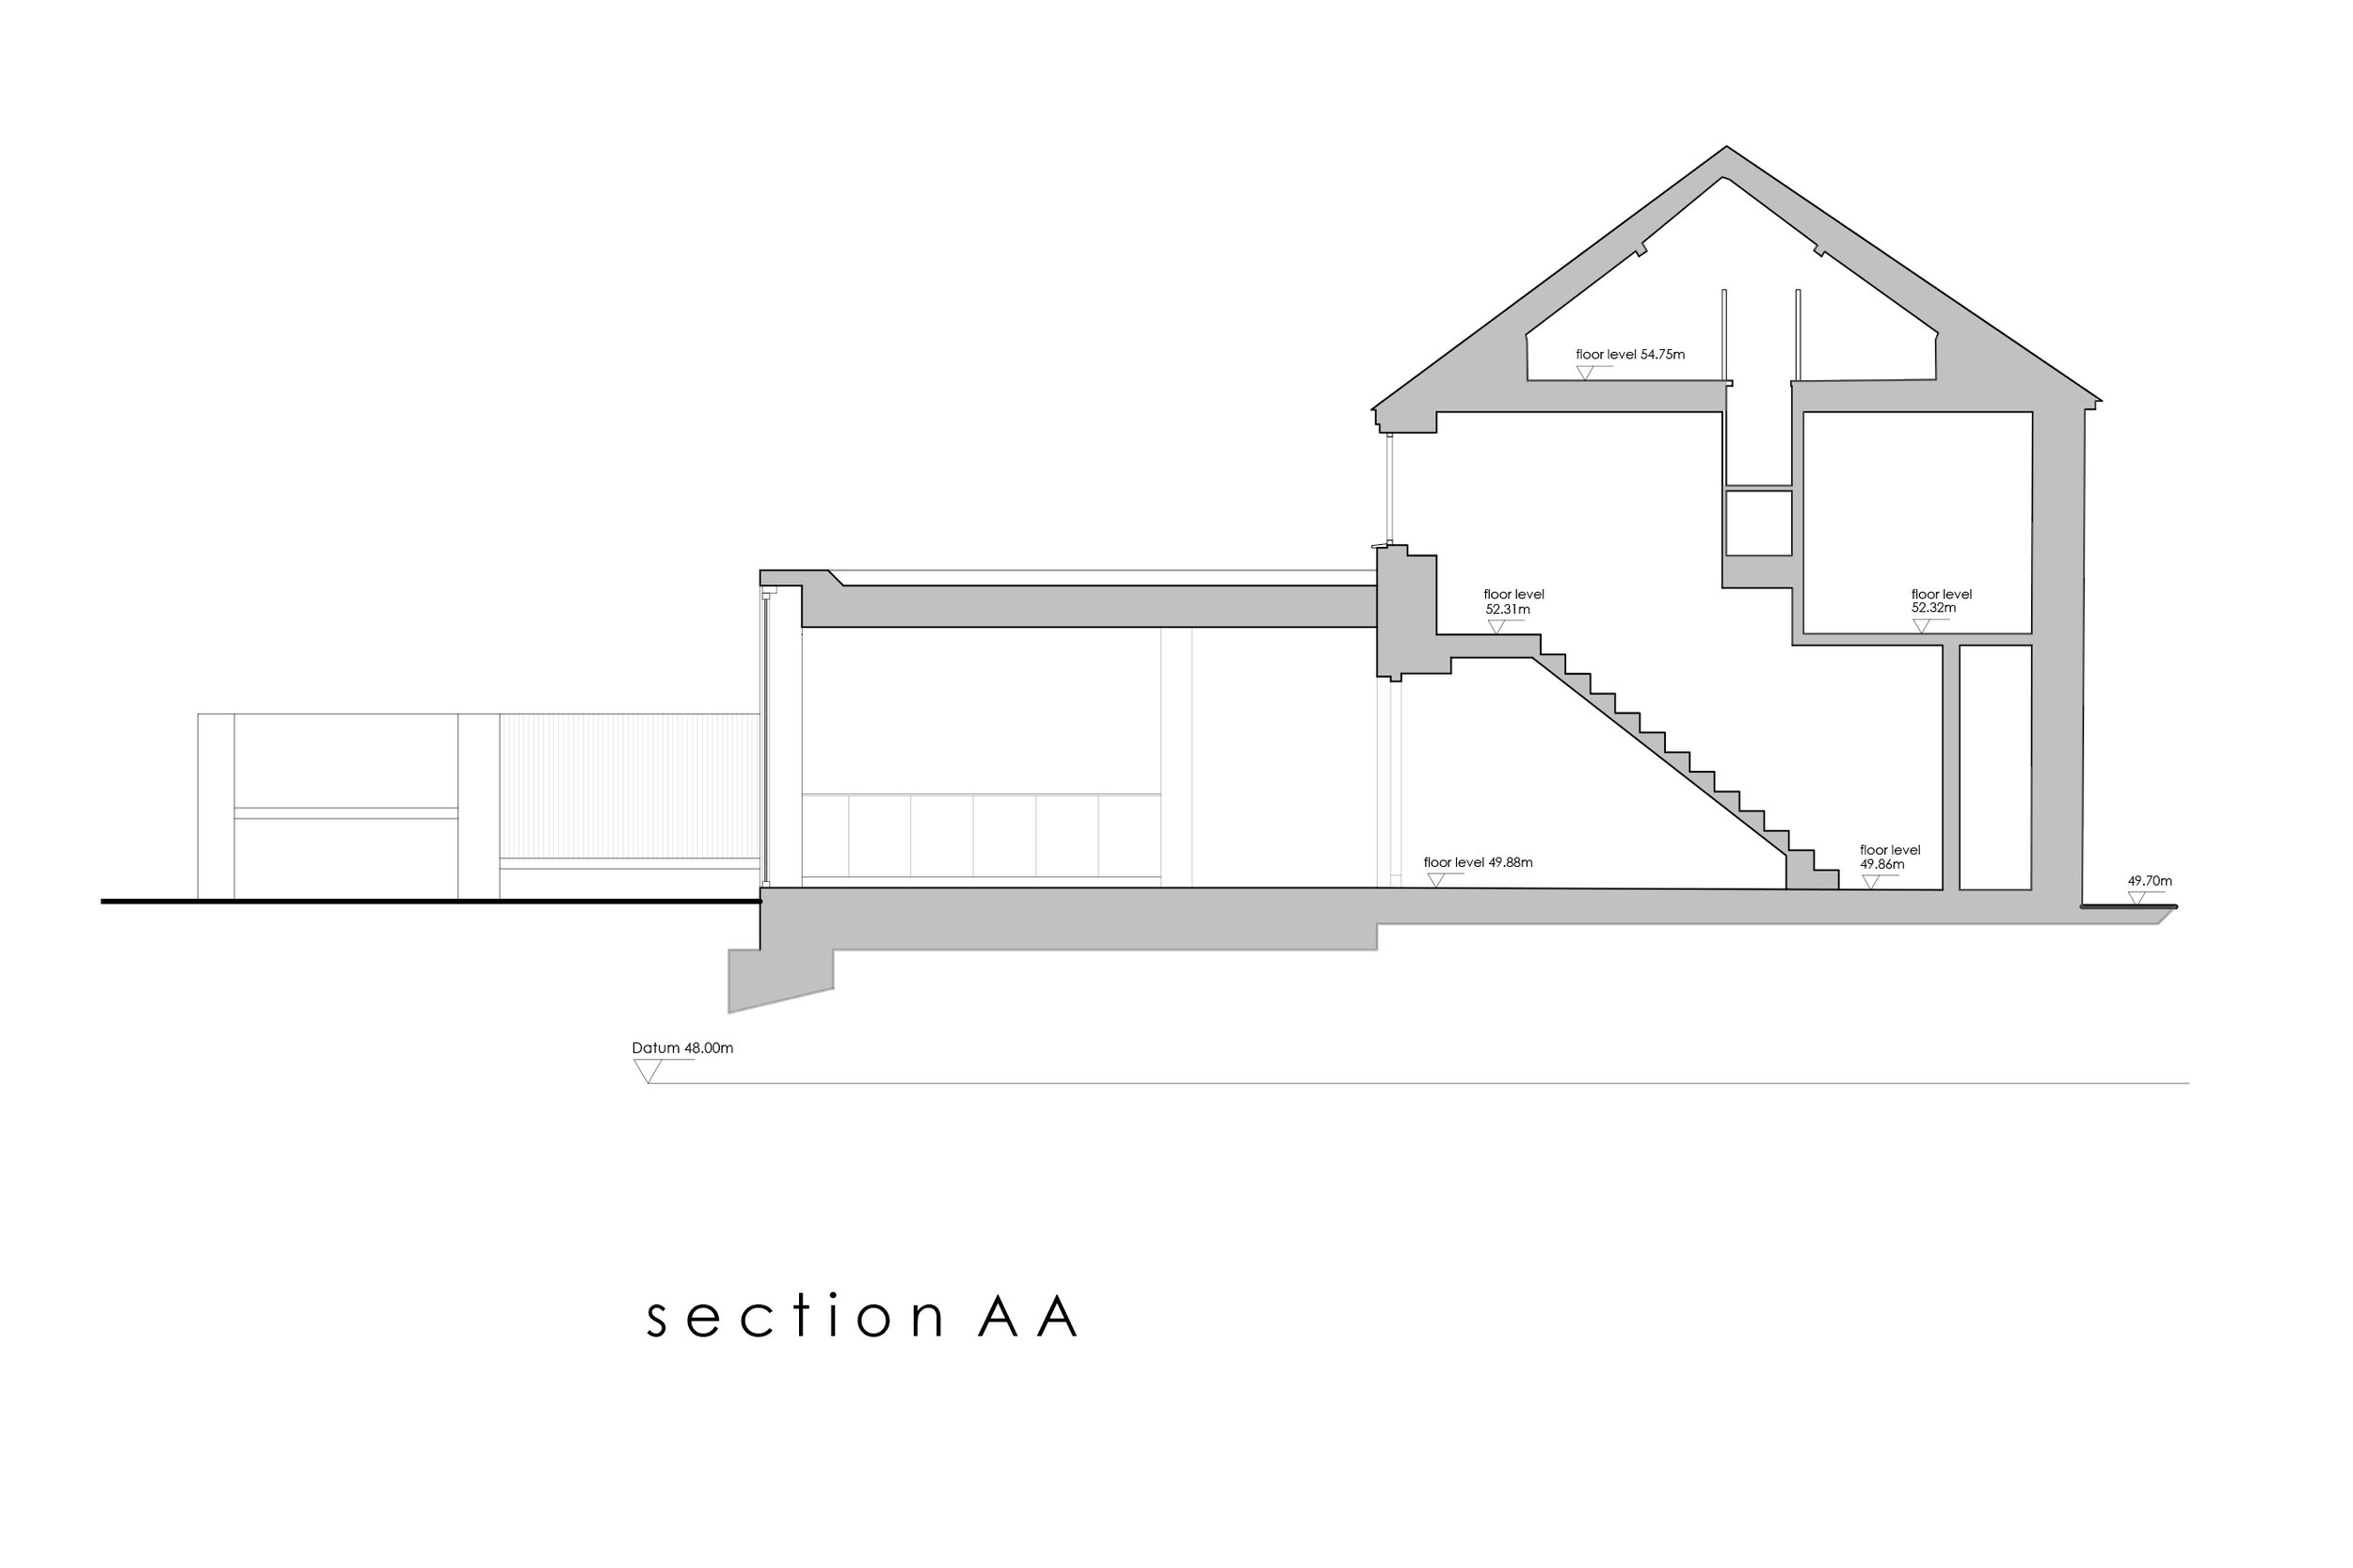 055-11A Proposed Elevations and Section.jpg